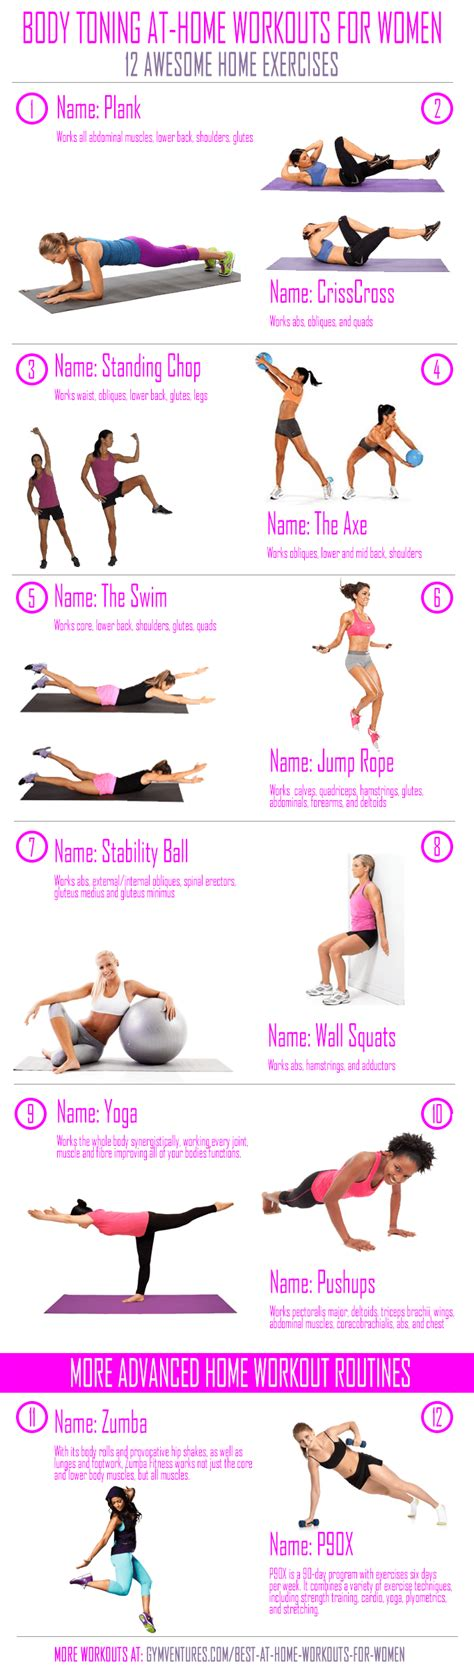 at home workouts for 12 best home exercises